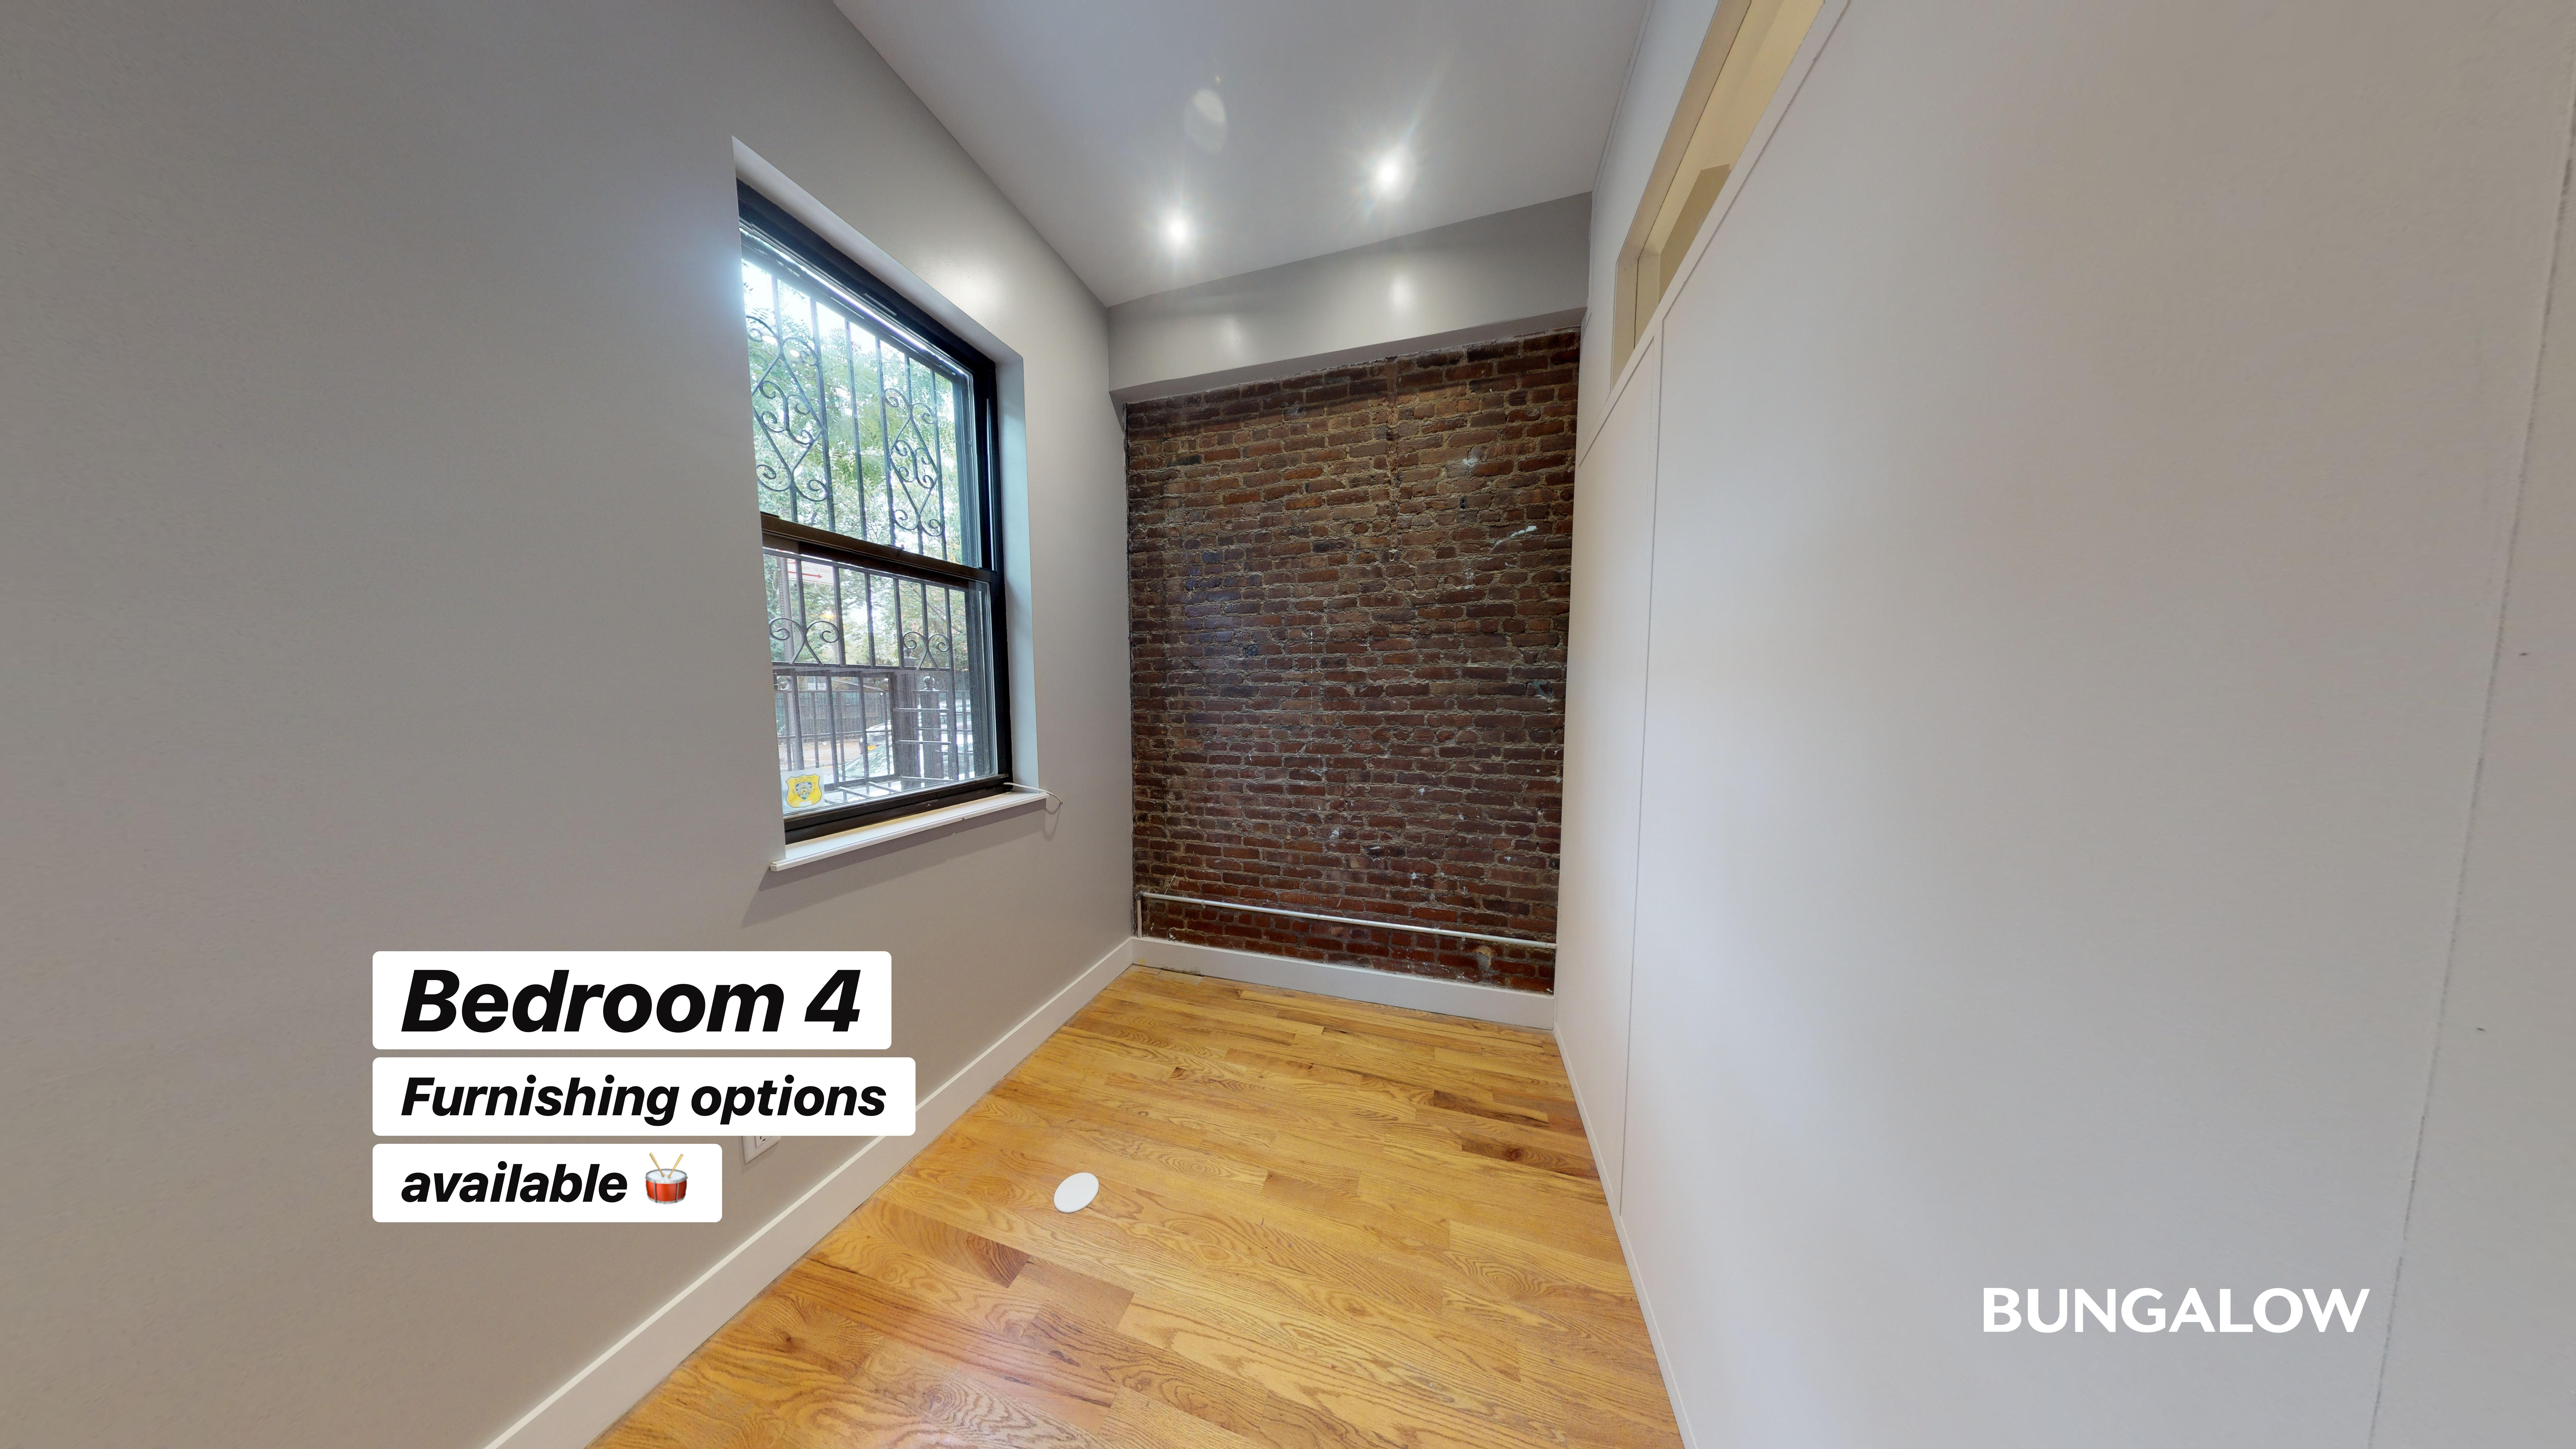 Private Bedroom in Beautiful Bushwick Home With Backyard Patio